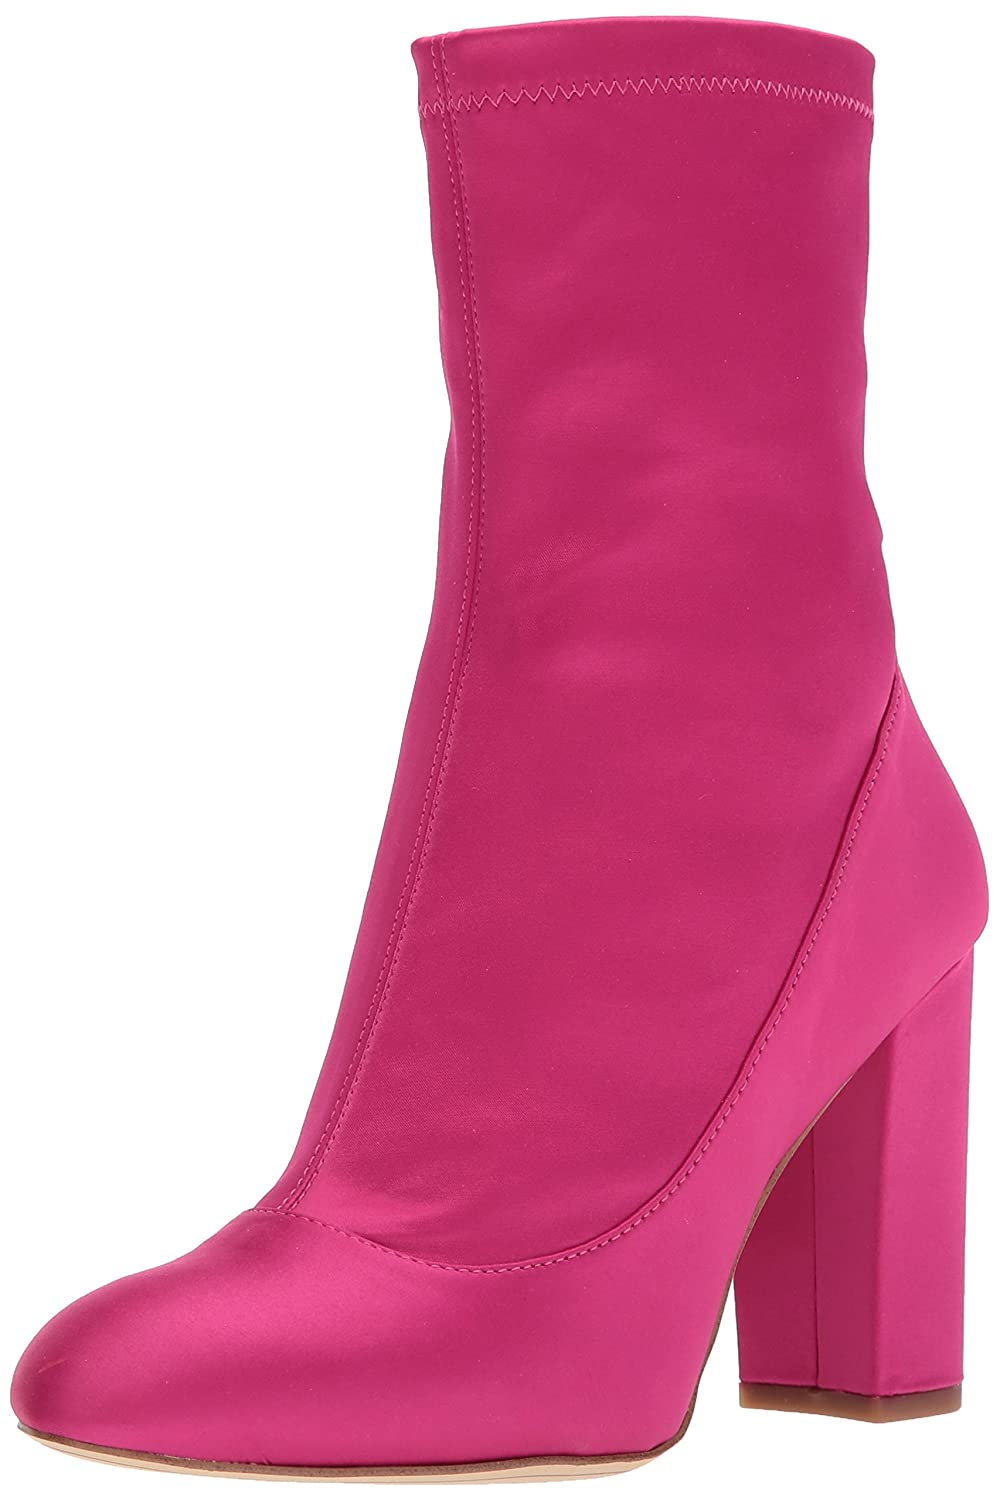 Sam Edelman Women's Calexa Fashion Boot B06ZXYC88D 6.5 B(M) US|Berry Crush Satin Stretch